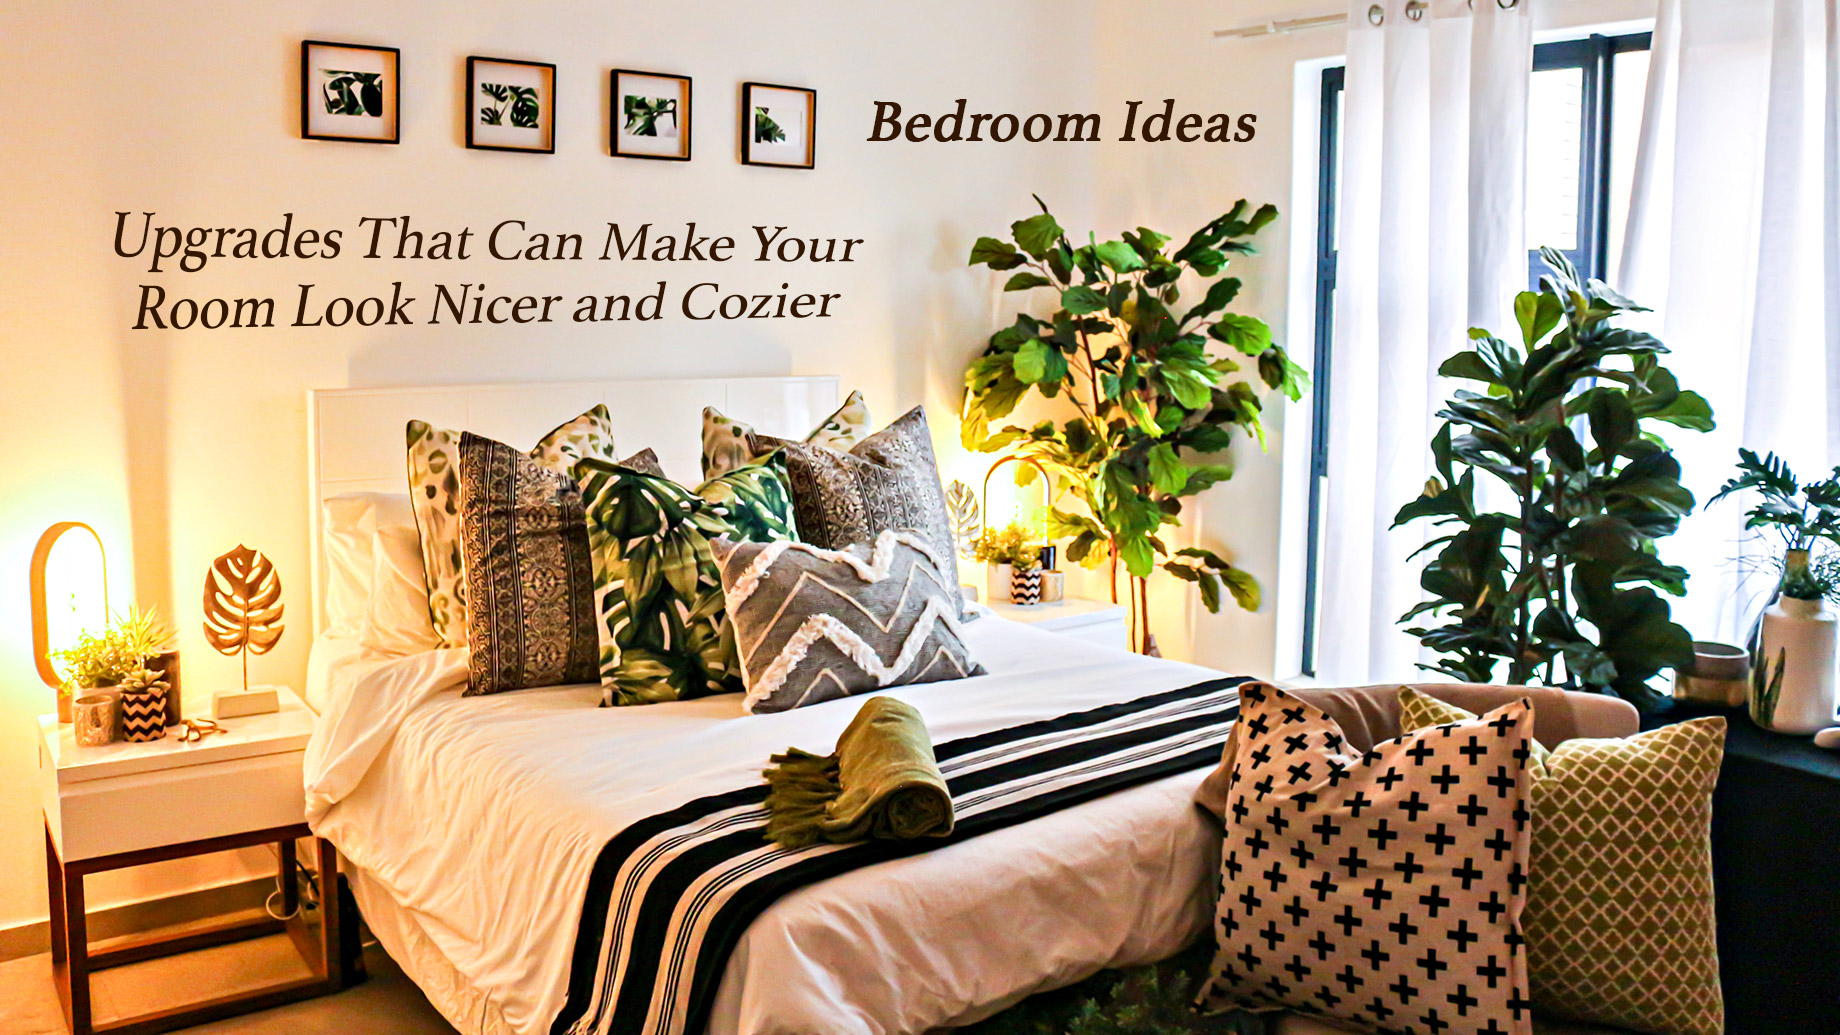 Bedroom Ideas - Upgrades That Can Make Your Room Look Nicer and Cozier